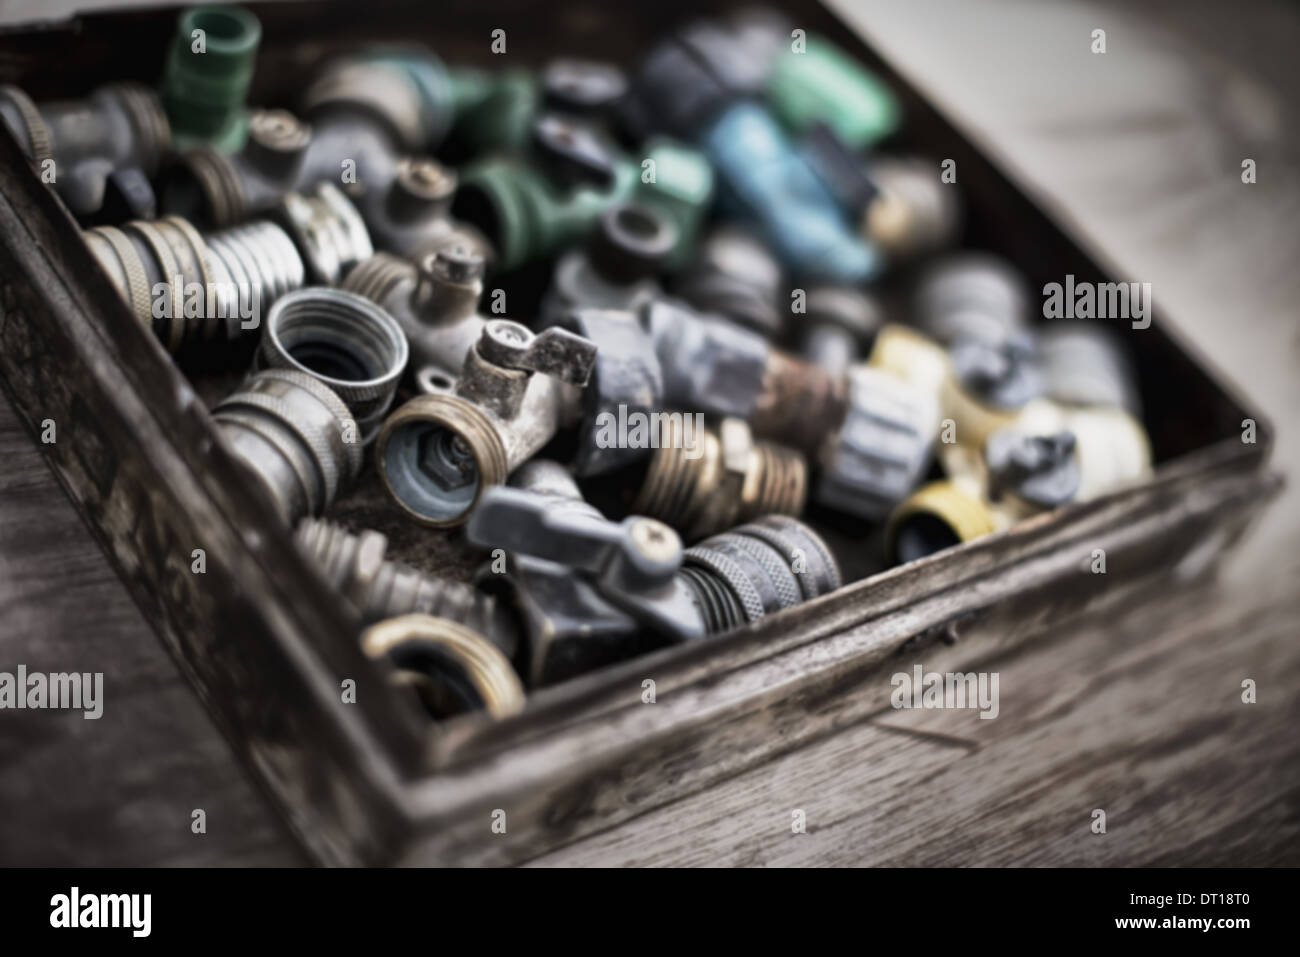 Woodstock New York USA Washers and hose pipe joint fittings in wooden box - Stock Image